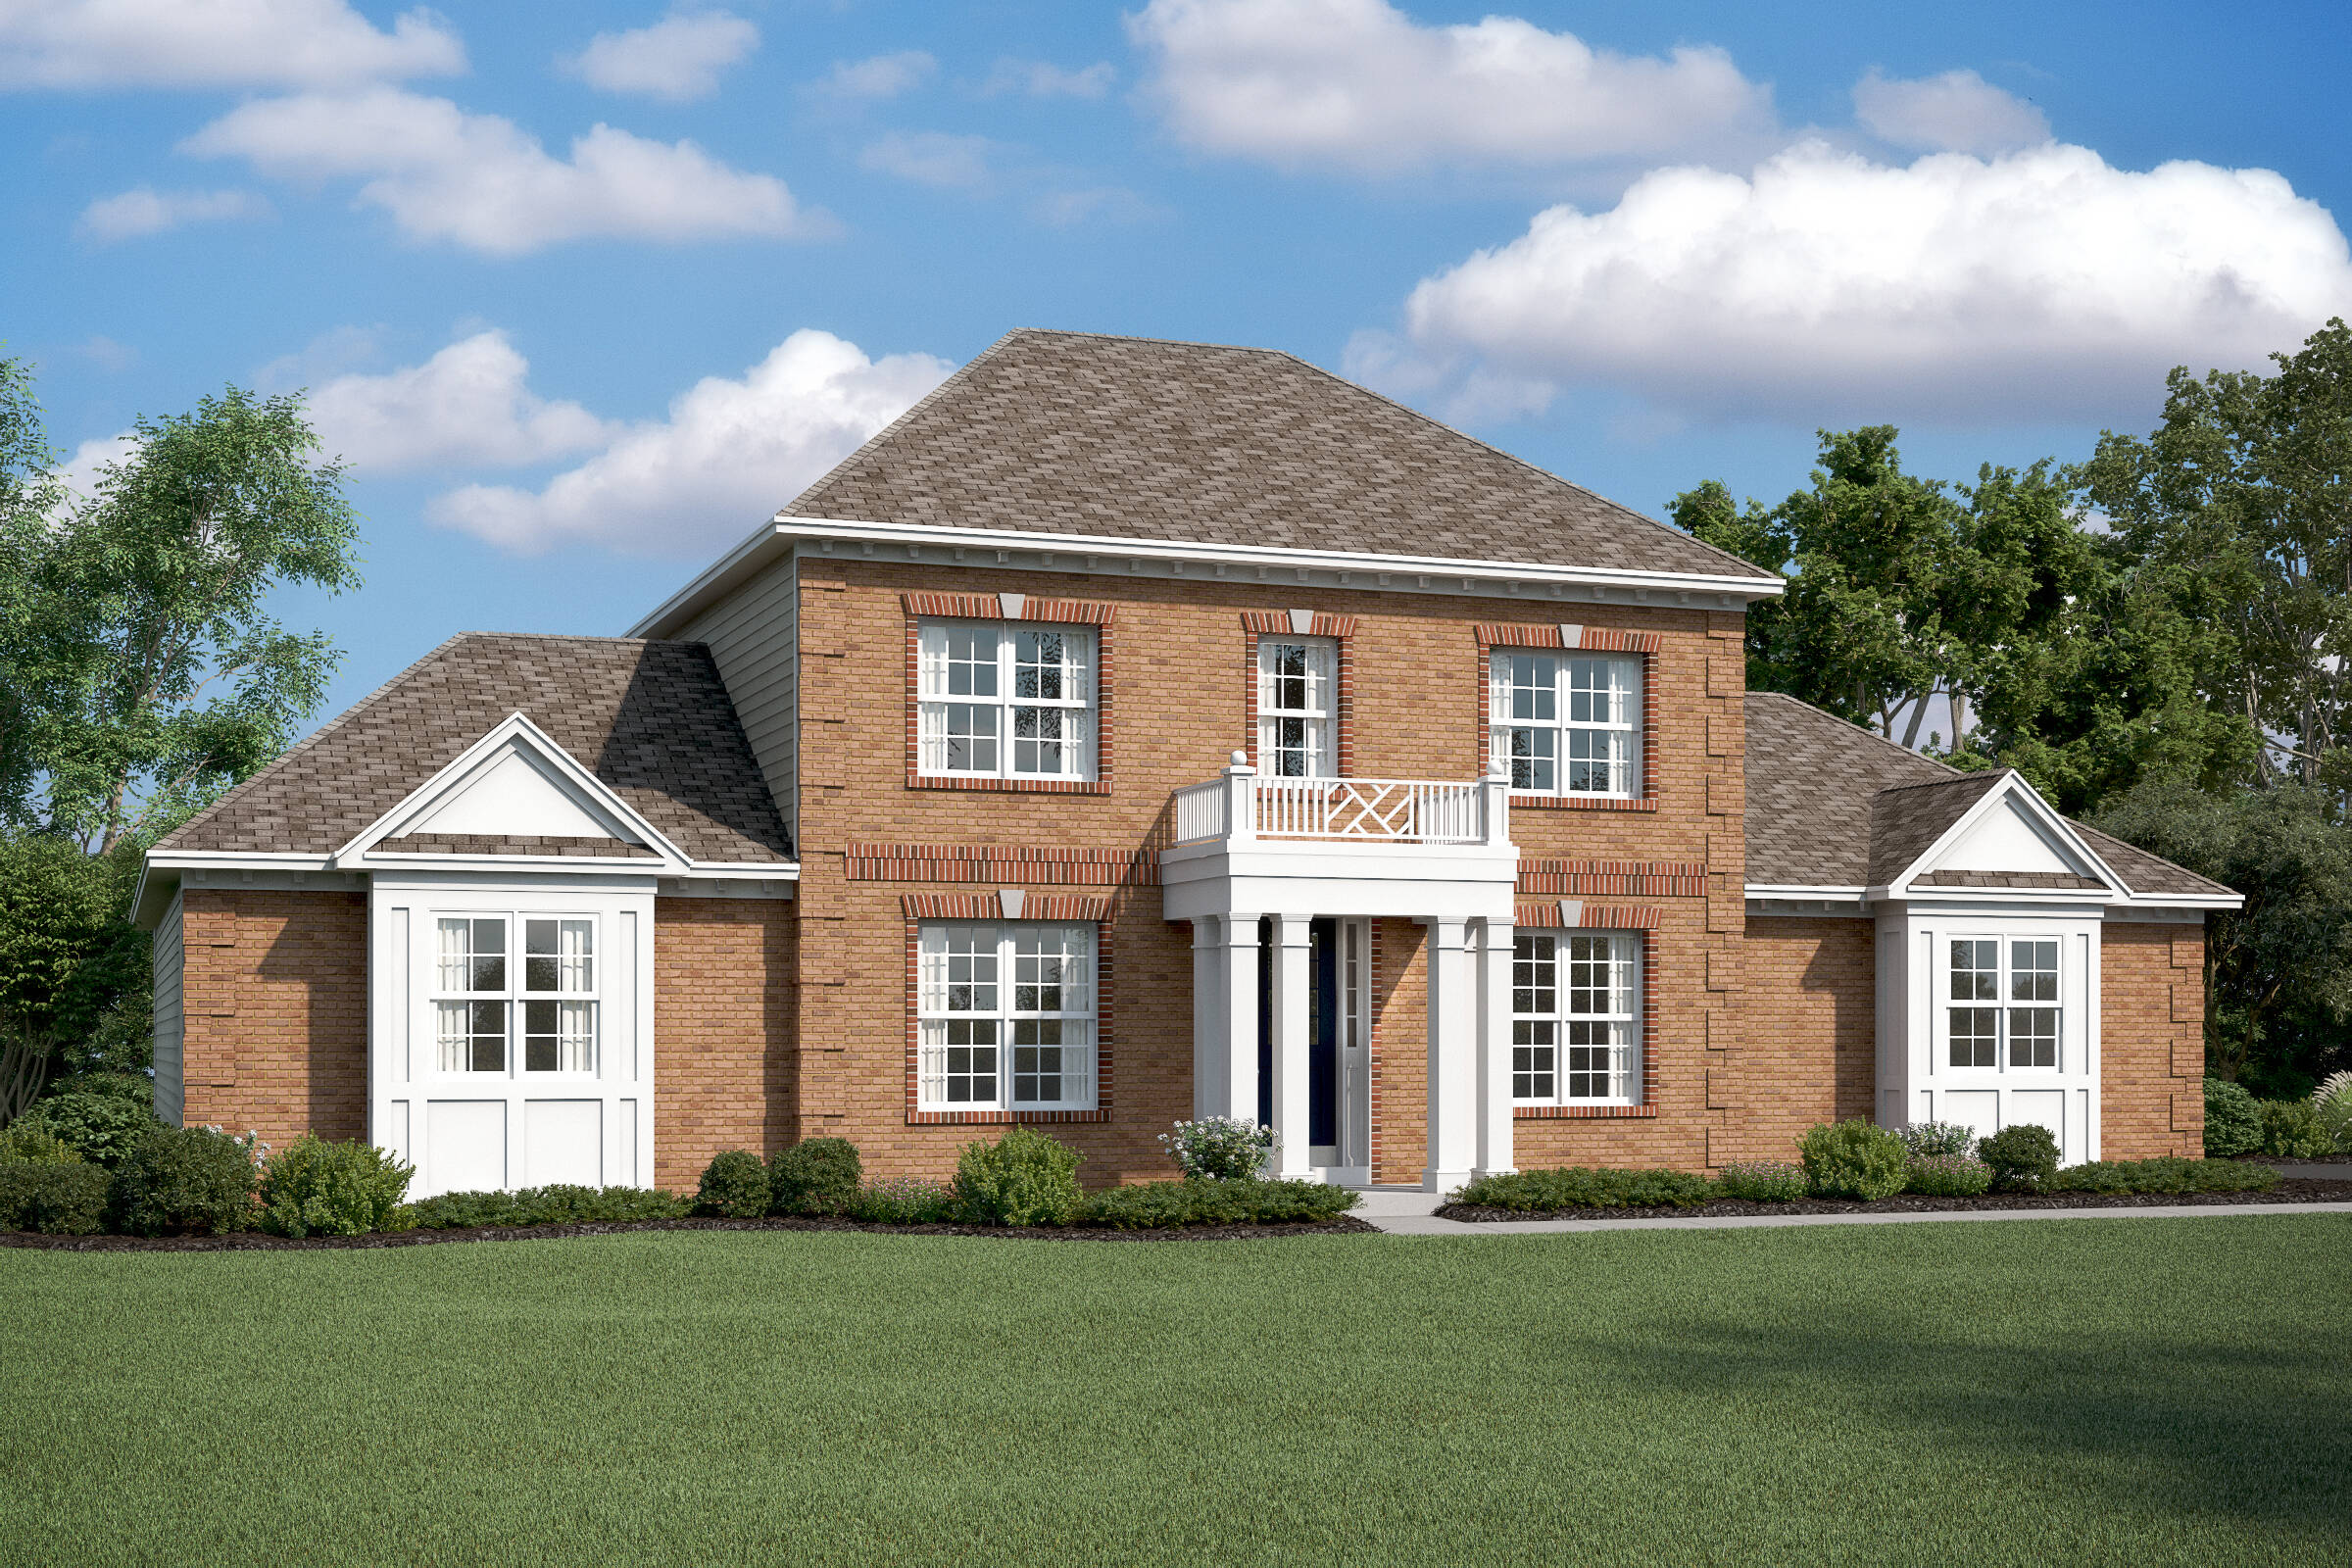 san michele jb new homes at reserves at wheatlands in virginia